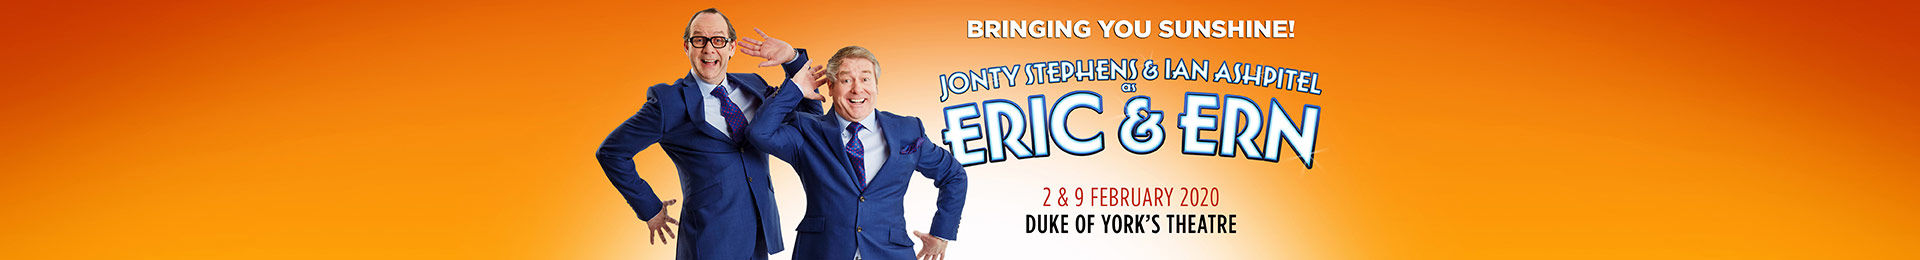 Eric and Ern banner image